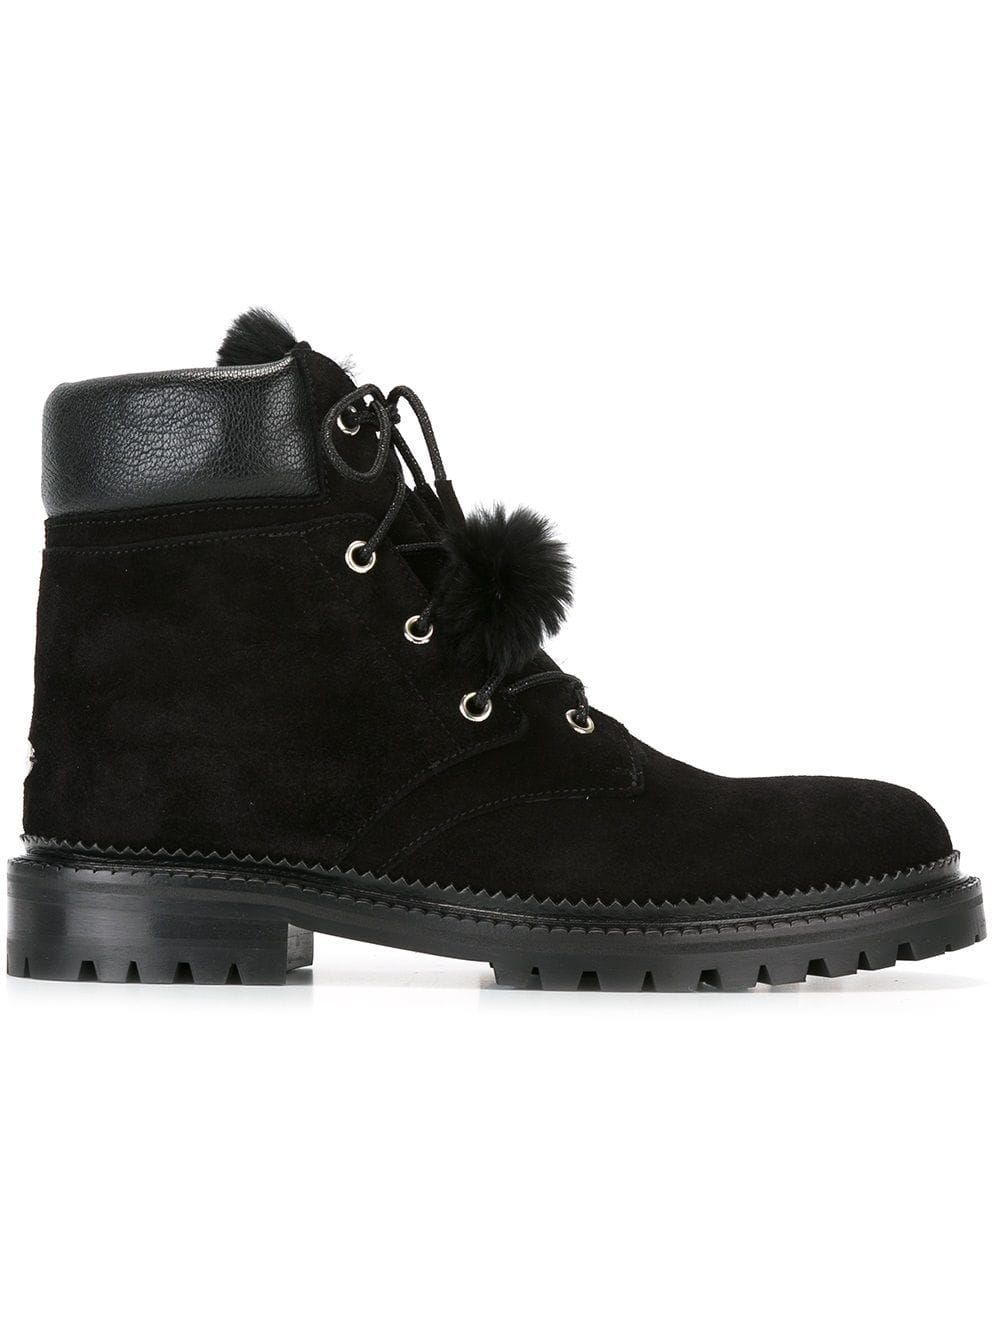 Elba 30 boots | Black suede boots, Boots, Jimmy choo